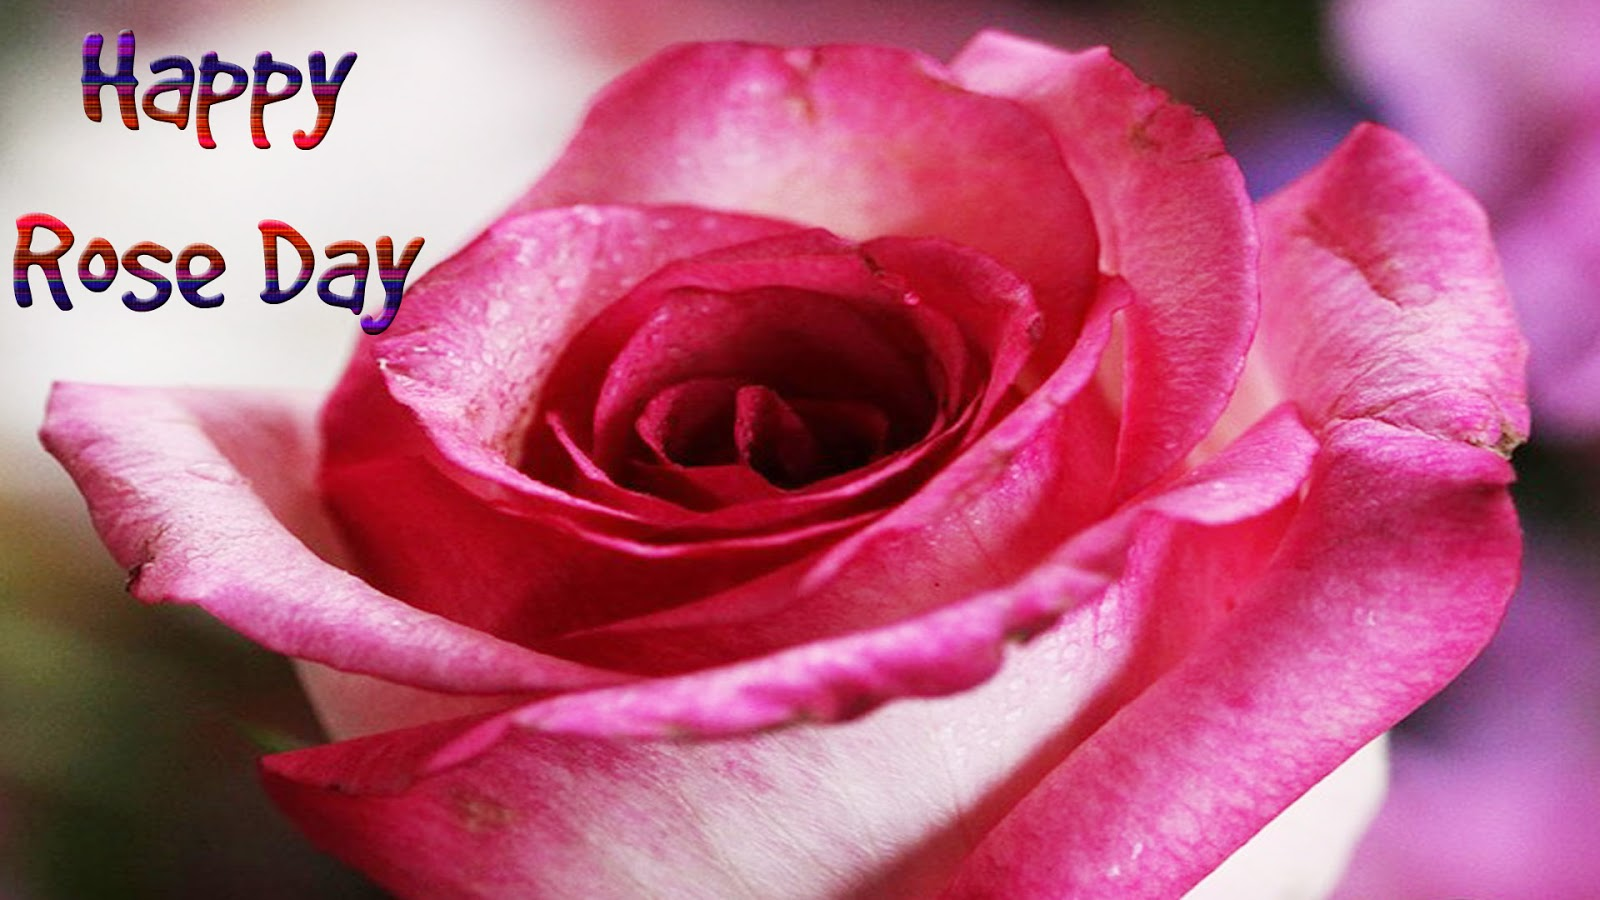 Happy Rose Day Wallpapers Pictures Photos In Hd Best Pic Rose